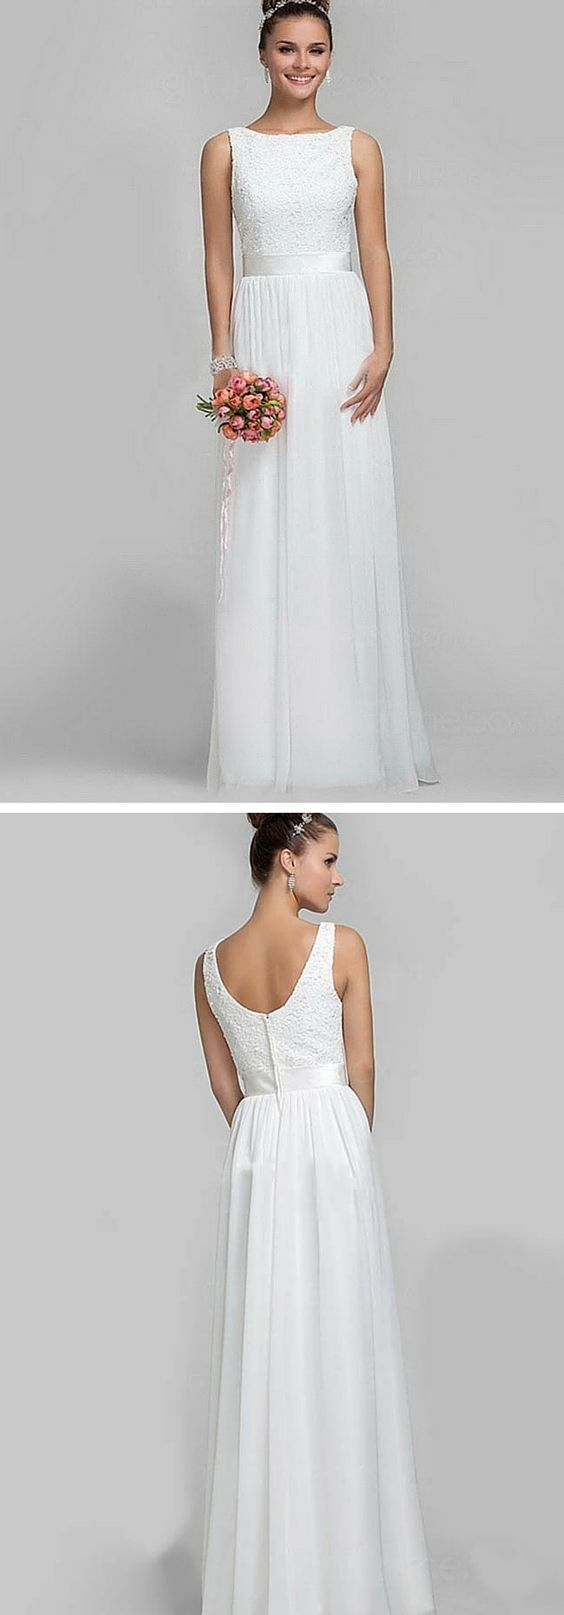 Classic floor-length lace and chiffon bridesmaid dress! It can be custom made in 32 colors. It's a classy and affordable dress your entire bridal party will love.